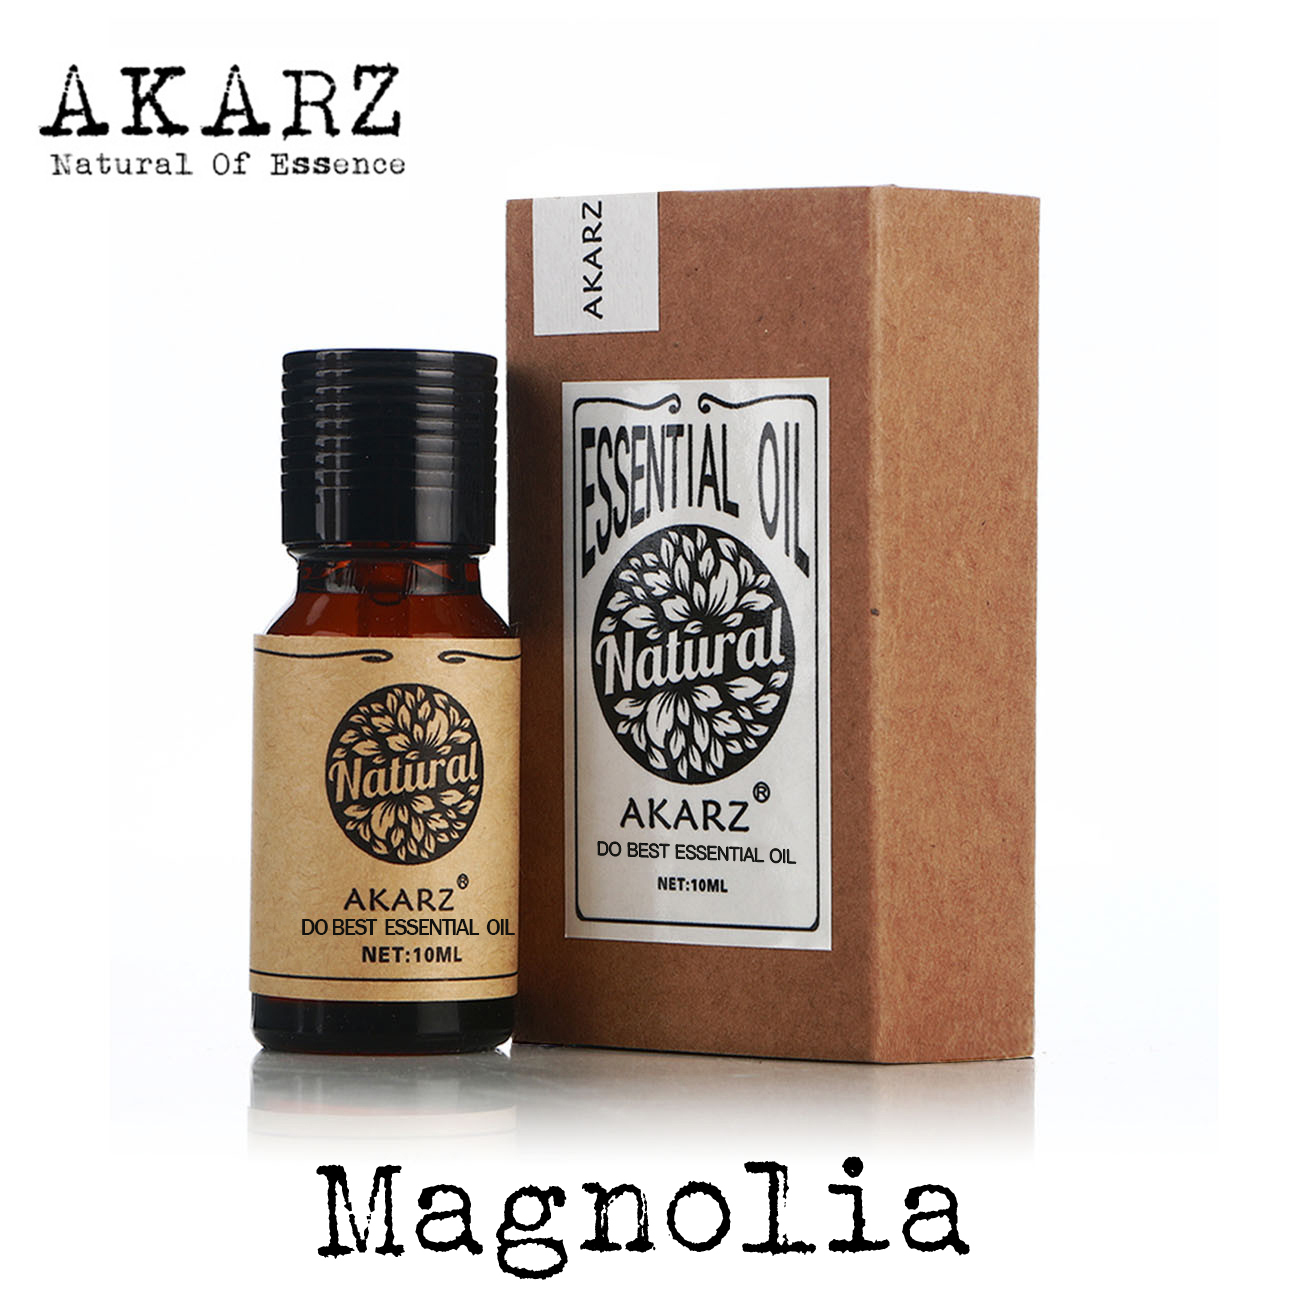 AKARZ Famous brand natural Magnolia oil Mind stabilization Anti aging Remove stain Skin regeneration Magnolia essential oil image